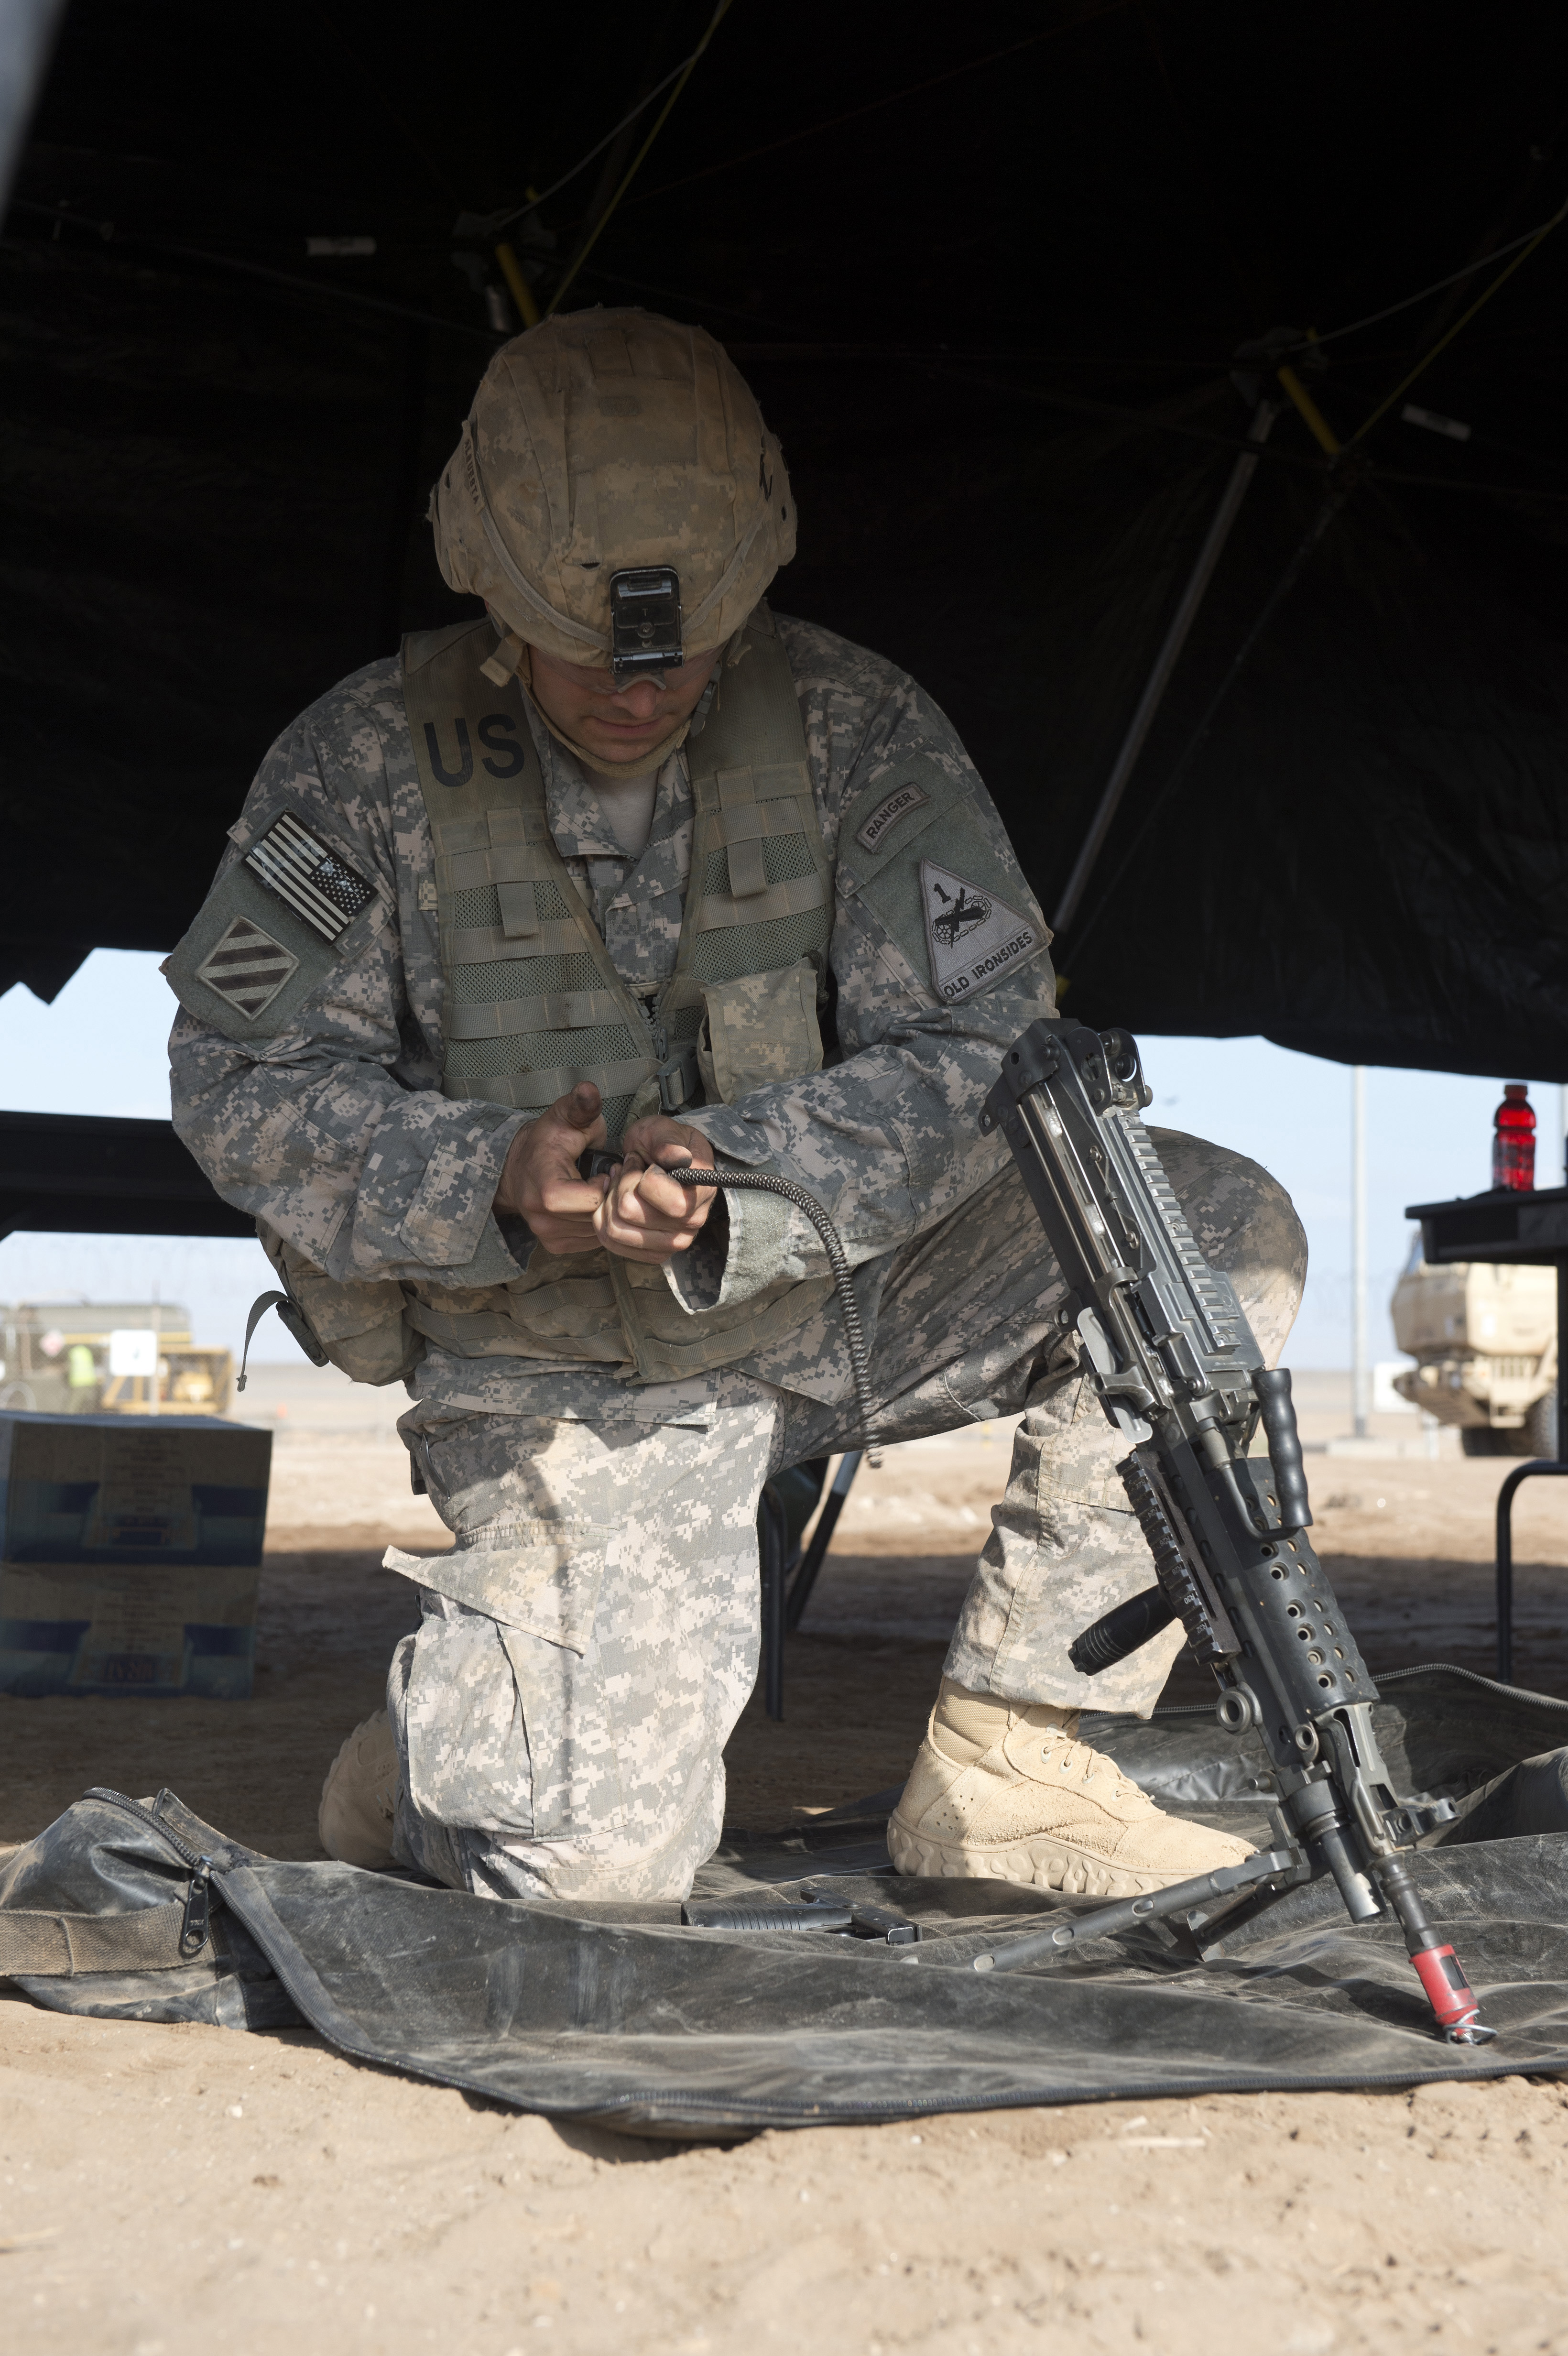 A soldier from the 1st Battalion, 77th Armor Regiment, reassembles a M249 Squad Automatic Weapon during the Expert Infantry Badge assessment course at Camp Lemonnier, Djibouti, April 21, 2015. Candidates' ability to properly maintain and utilize a variety of weapons was graded as part of the EIB assessment. (U.S. Air Force photo by Staff Sgt. Nathan Maysonet)